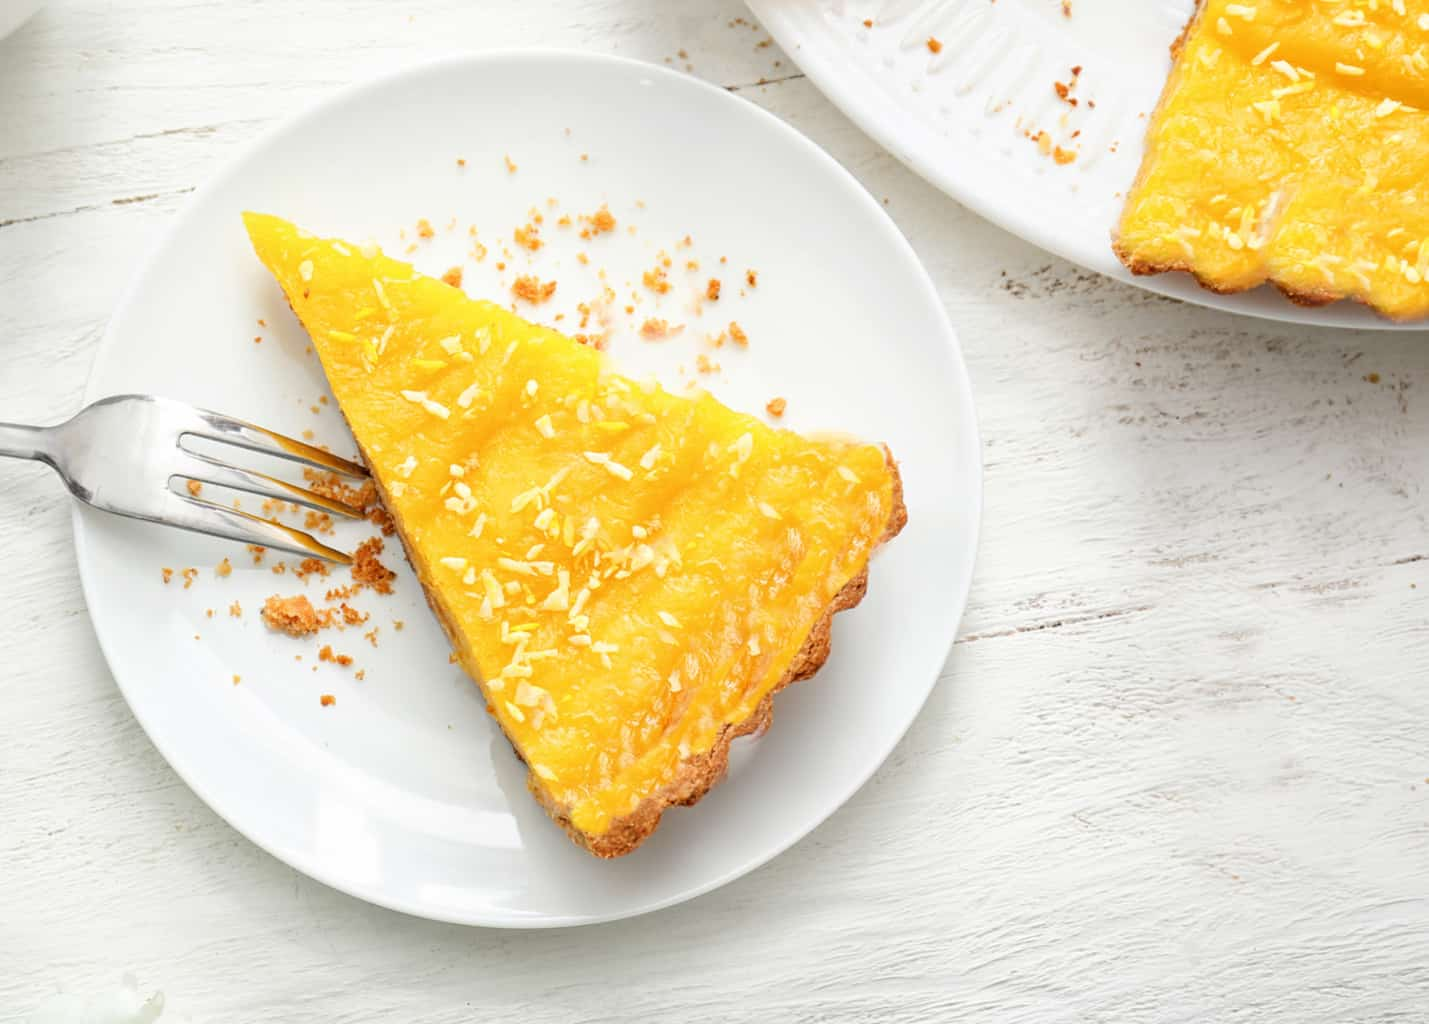 low carb lemon curd pie sliced on white plate